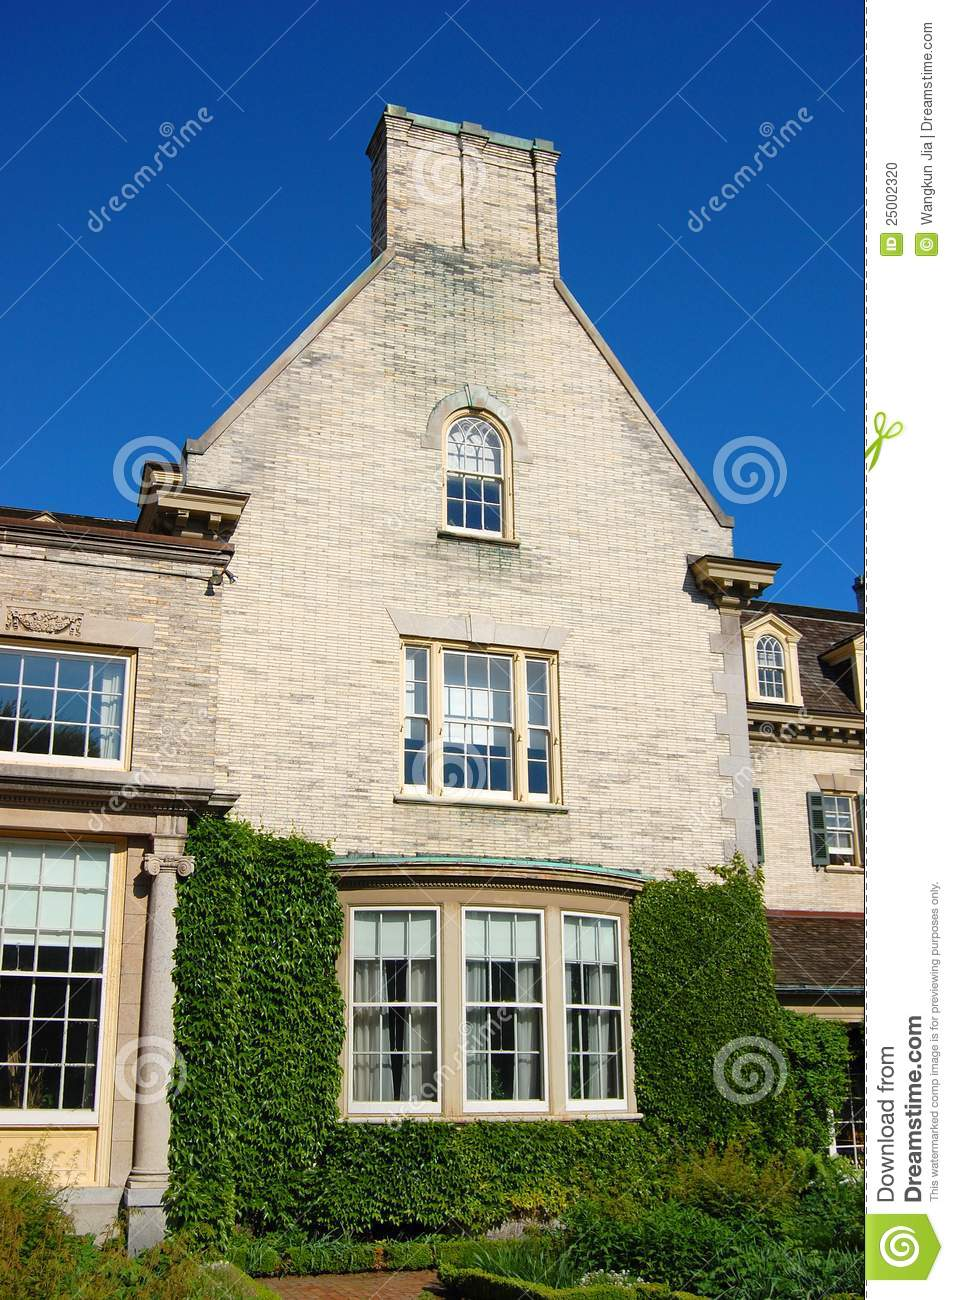 George Eastman House Rochester Stock Photo Image 25002320